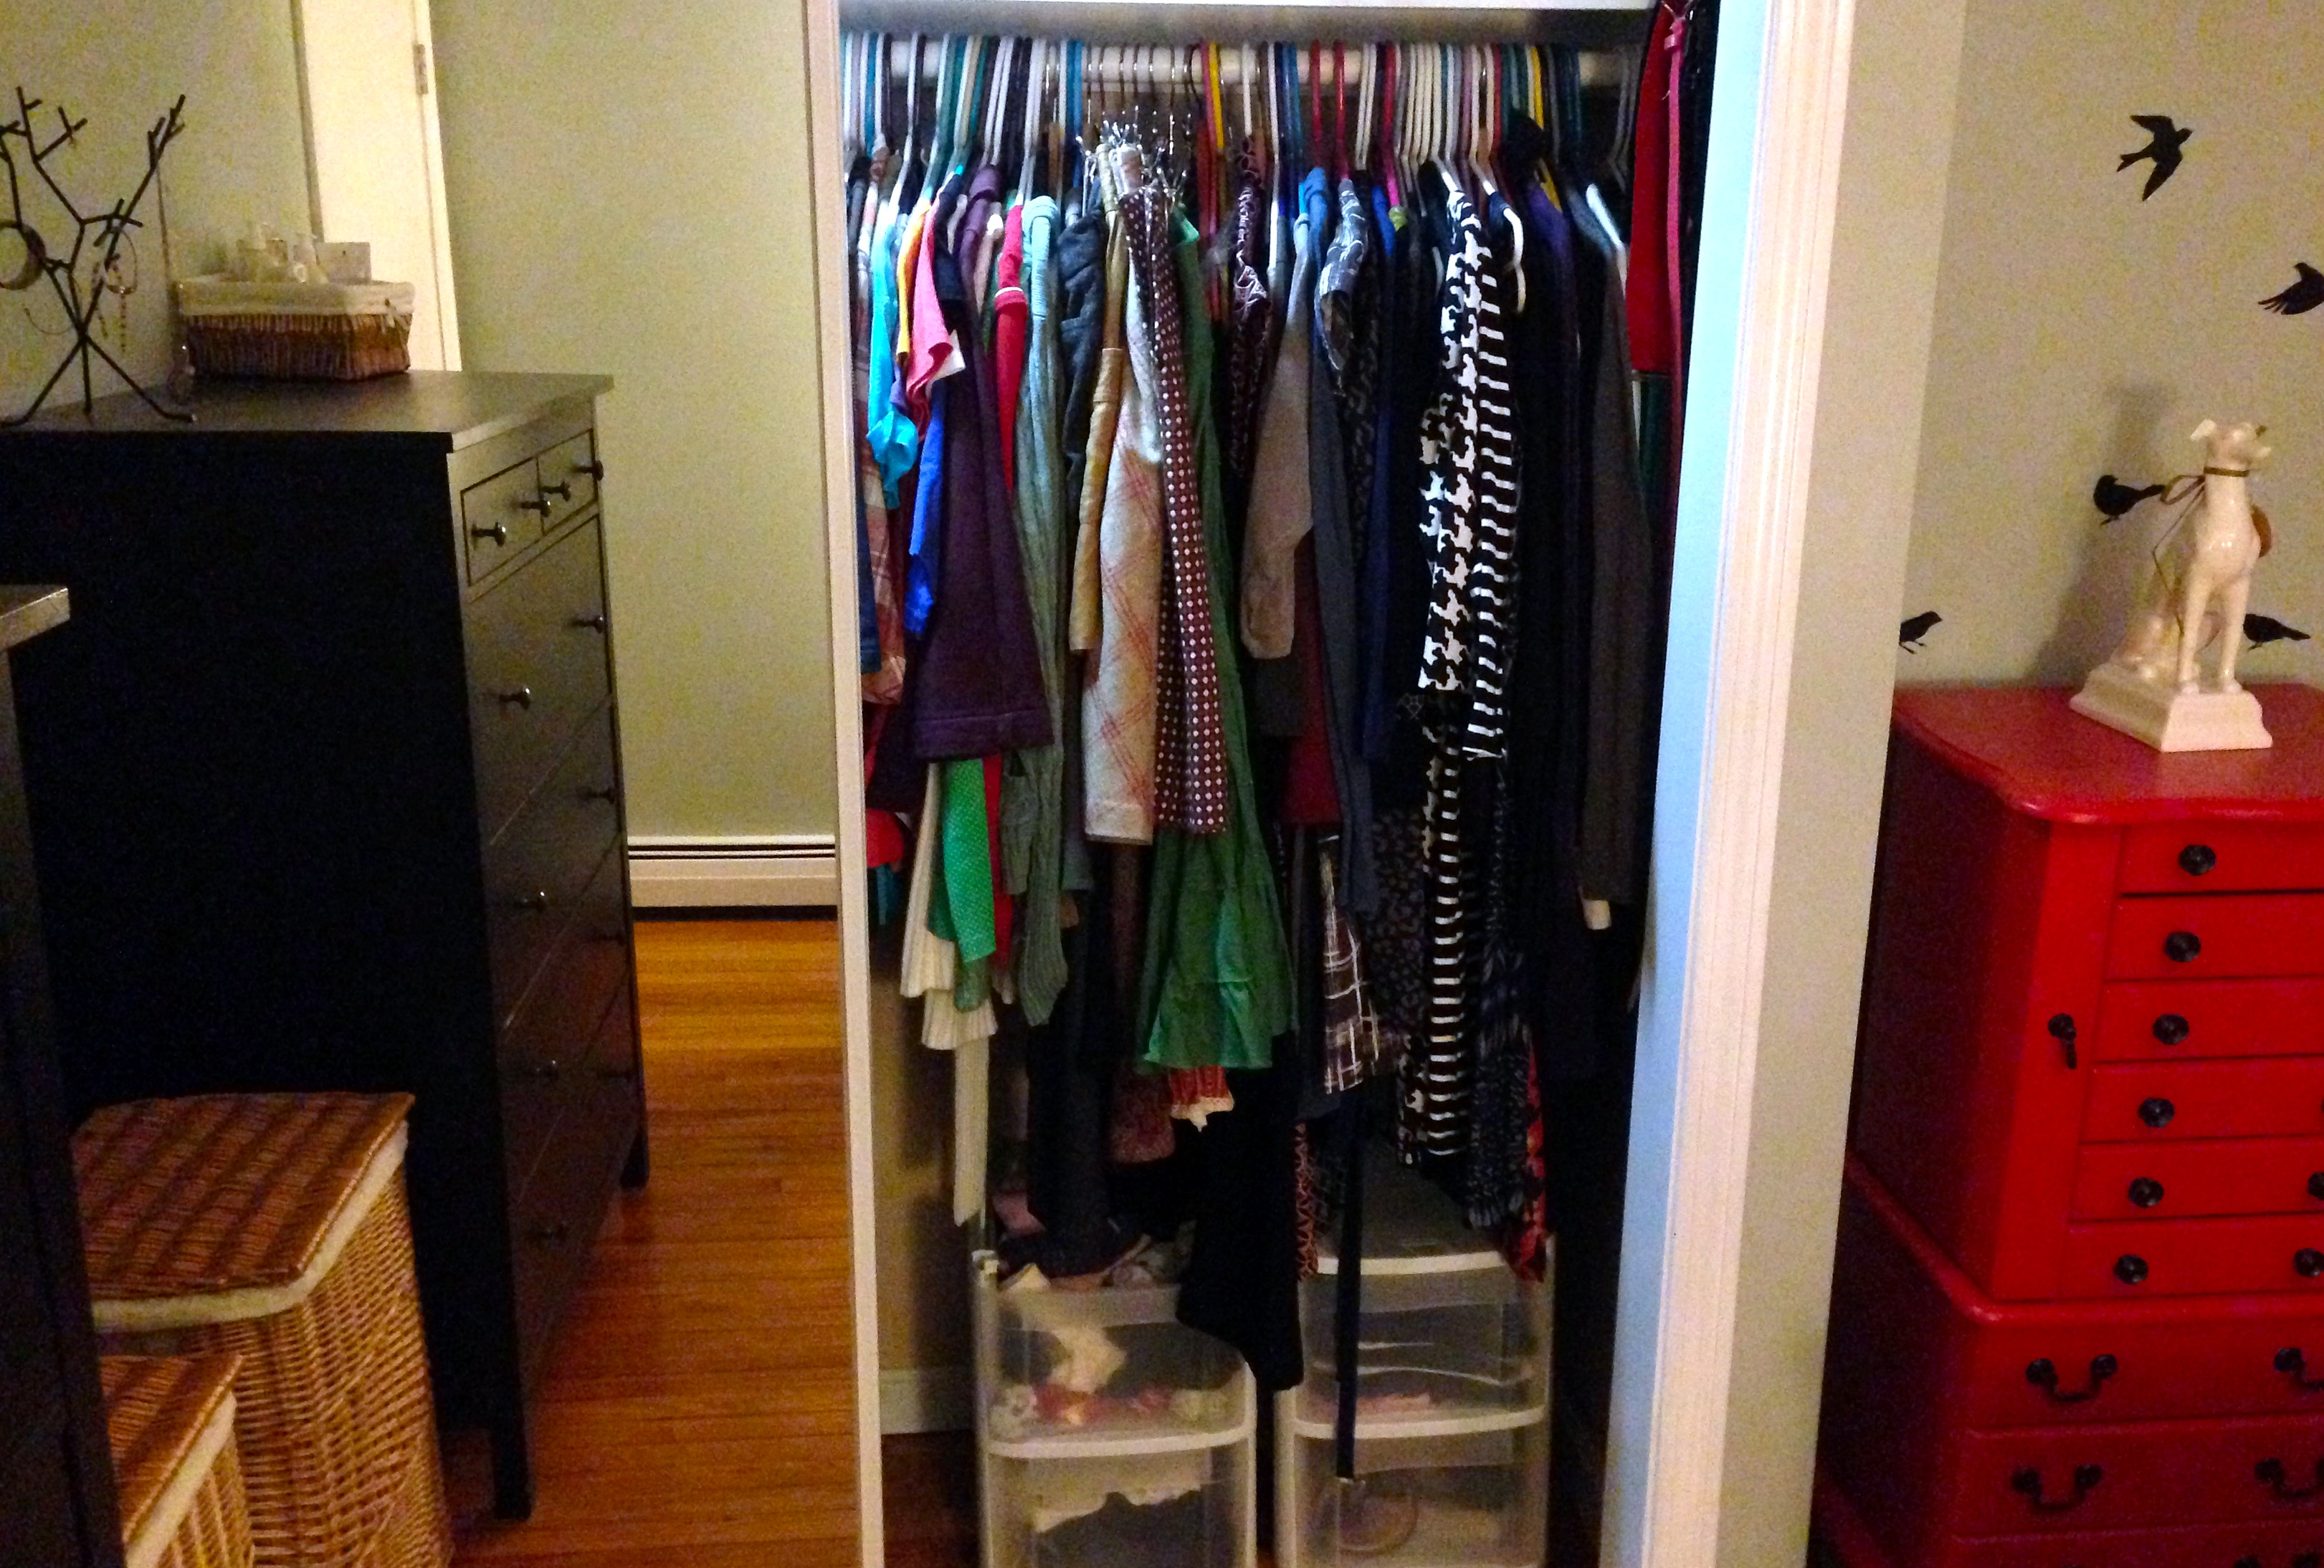 Our shared master bedroom closet